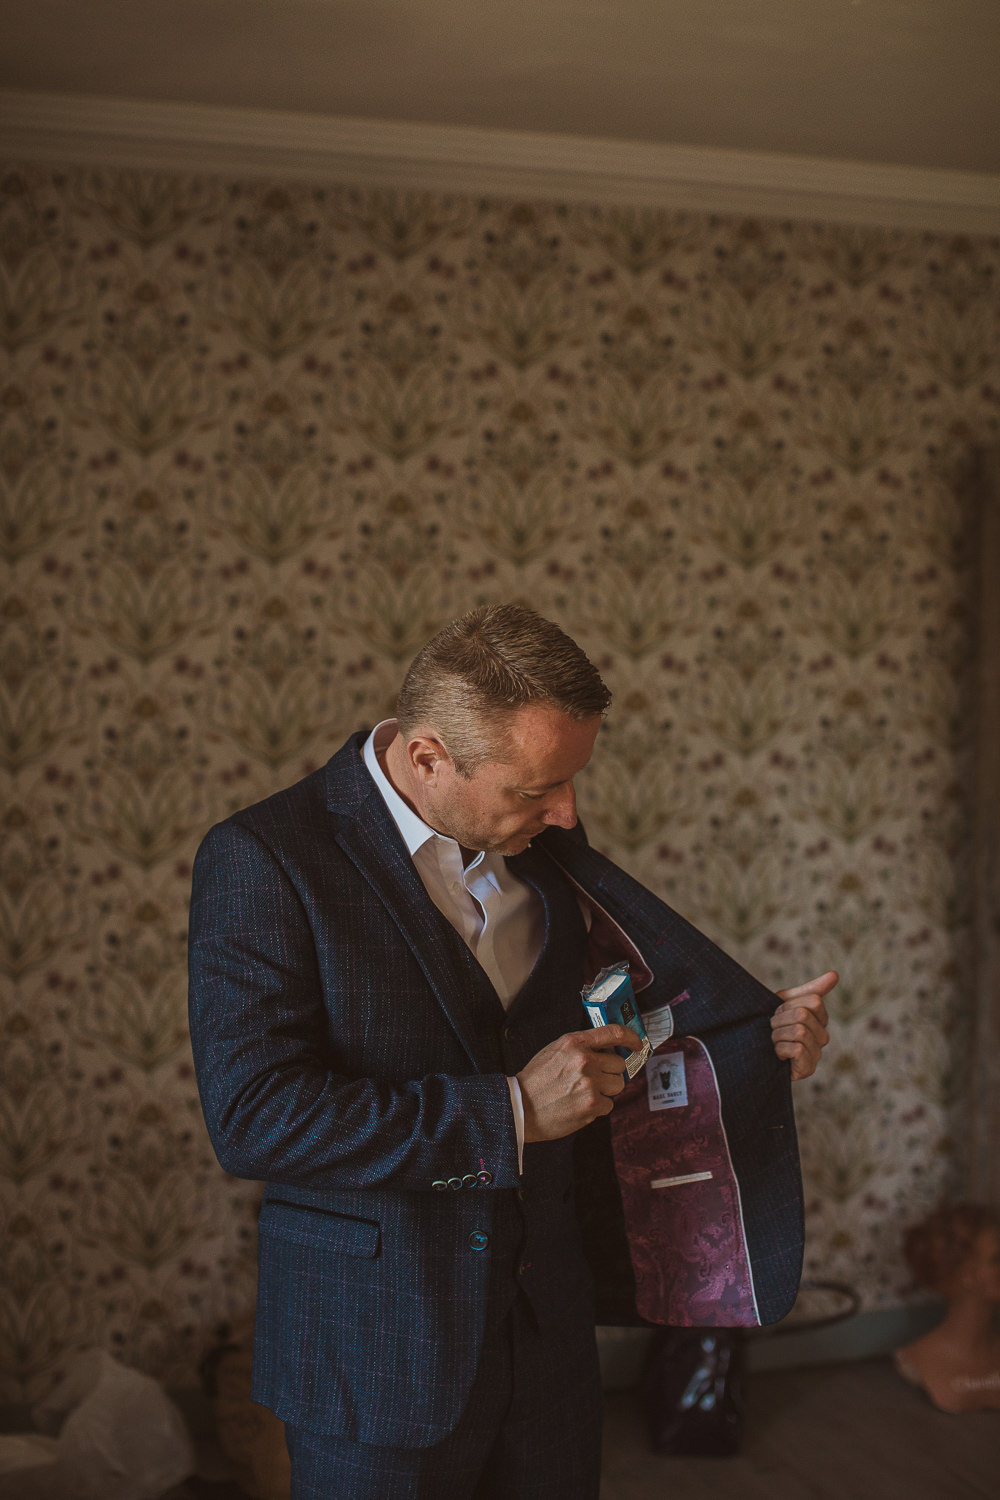 Groom Blue Navy Suit Lining Escape To The Chateau Wedding The Springles